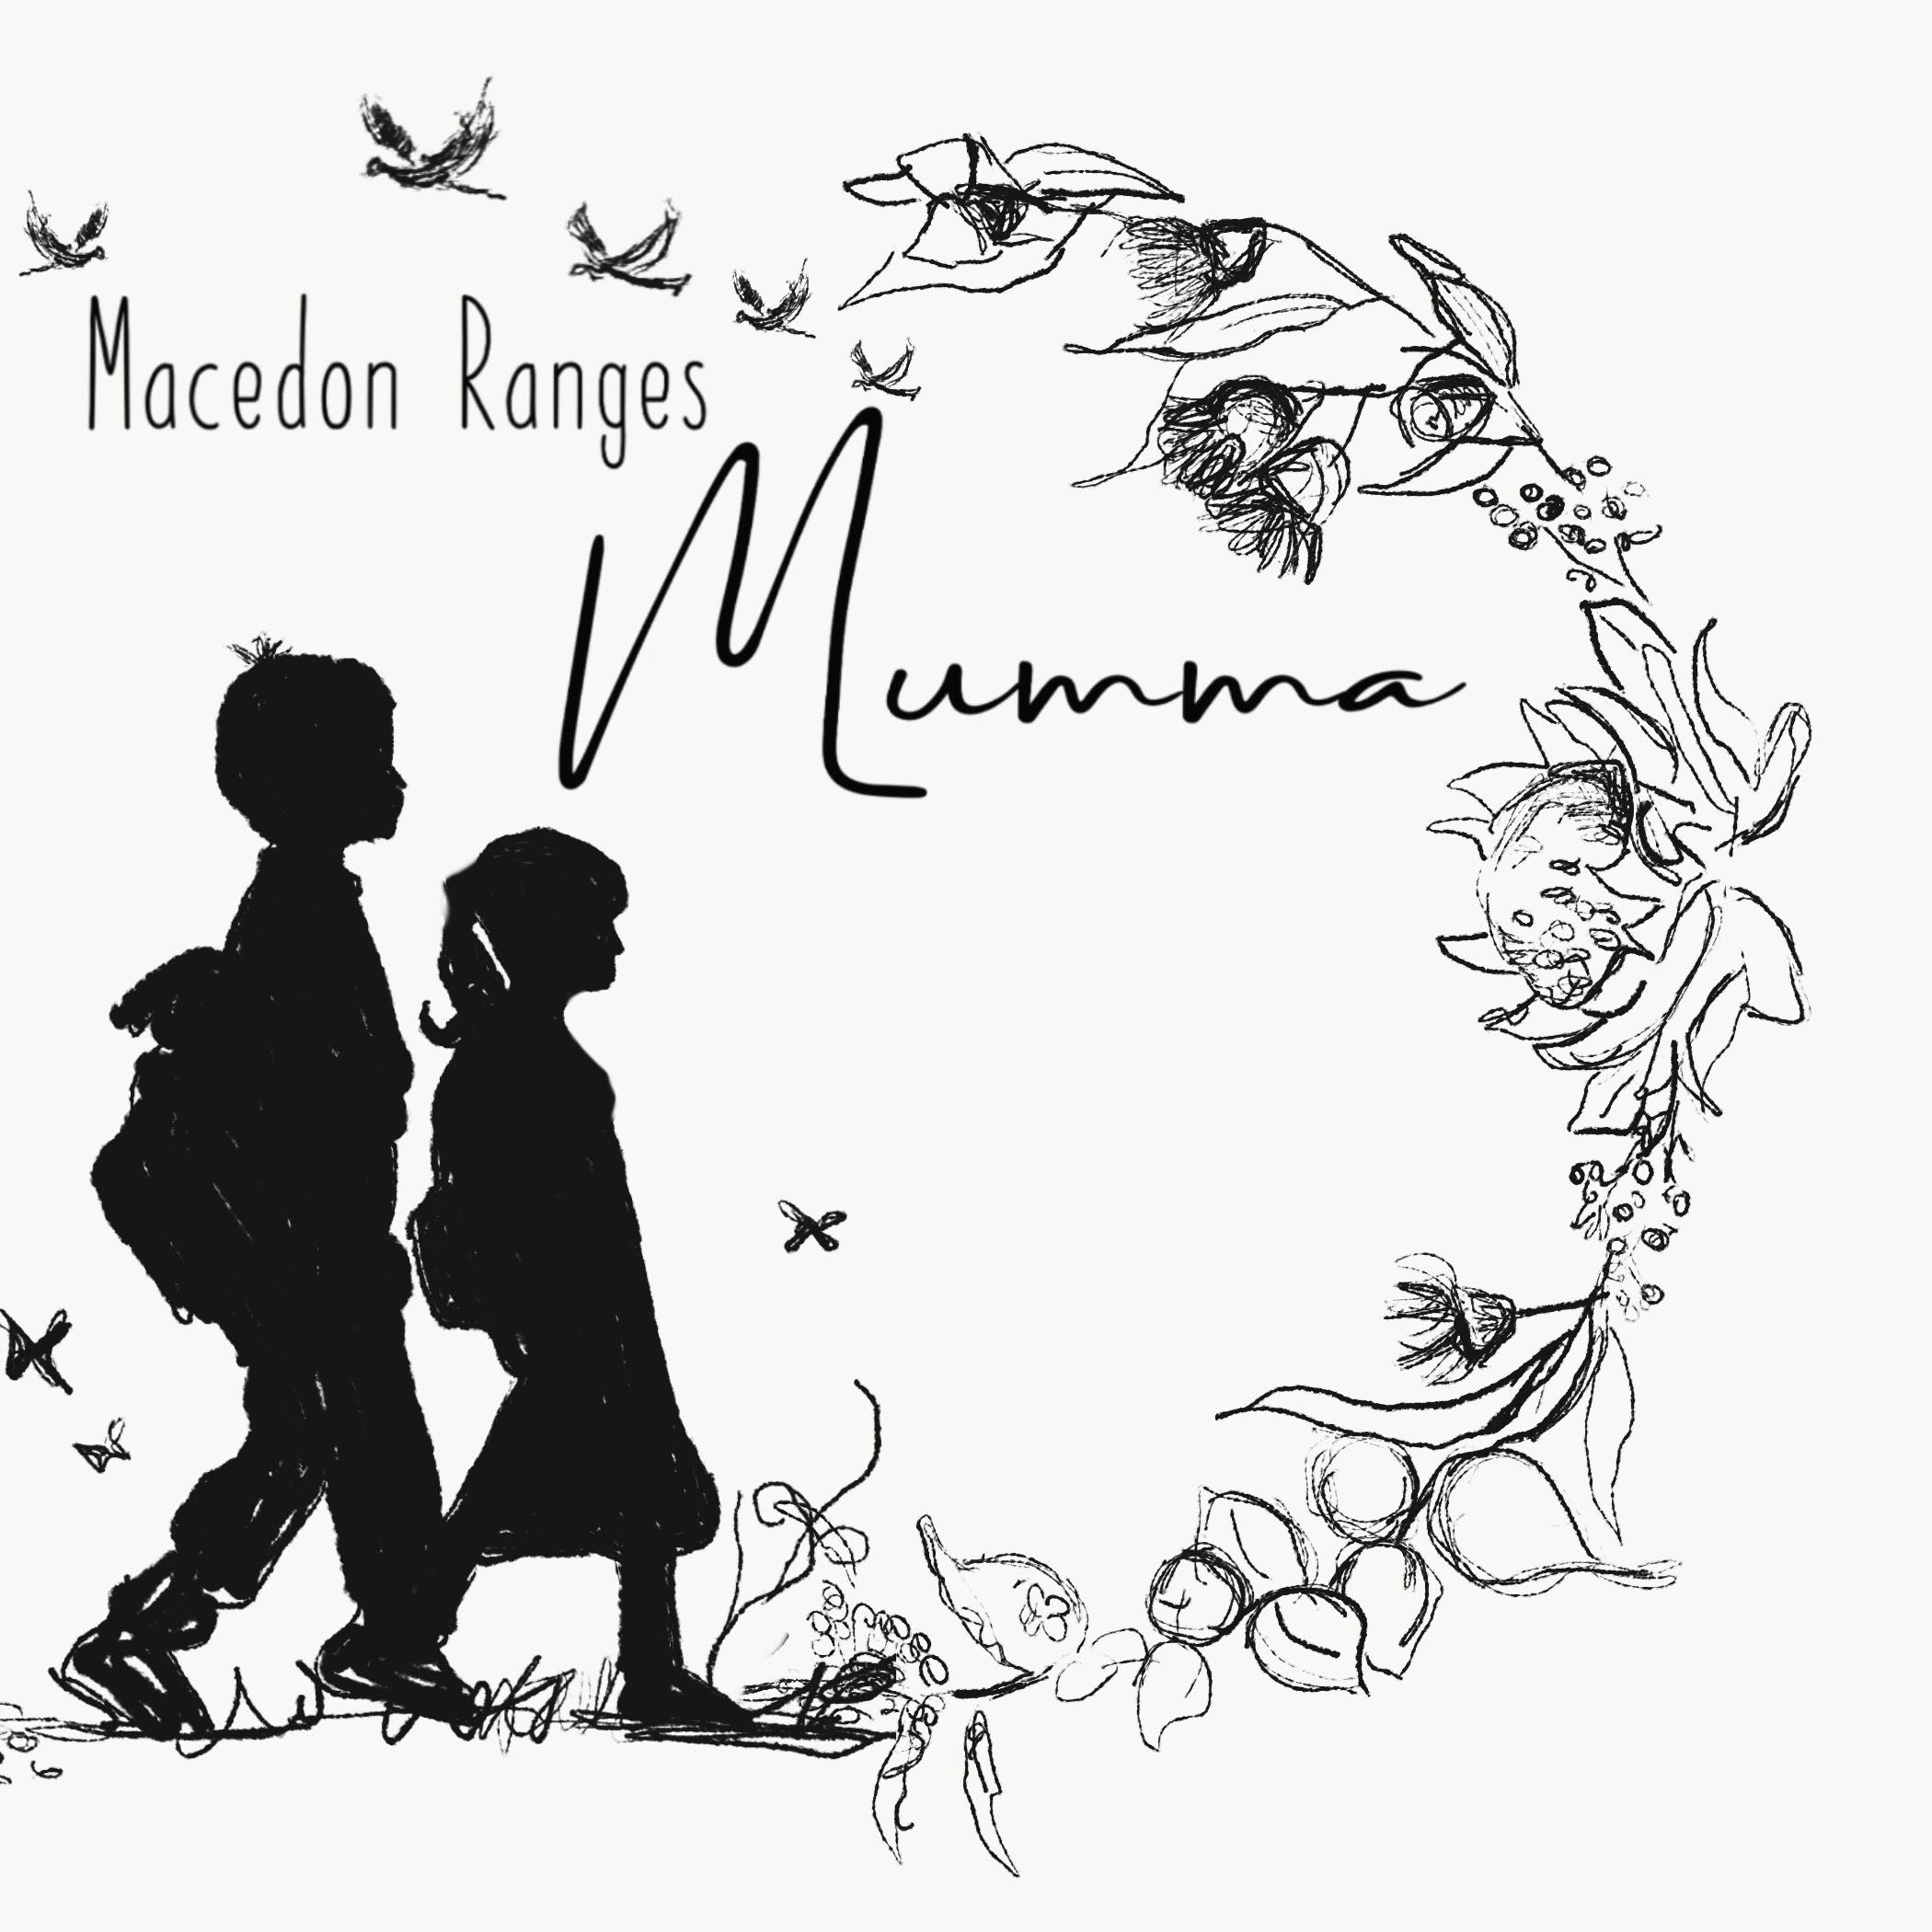 Text black and white kids walking leaves in moon shape